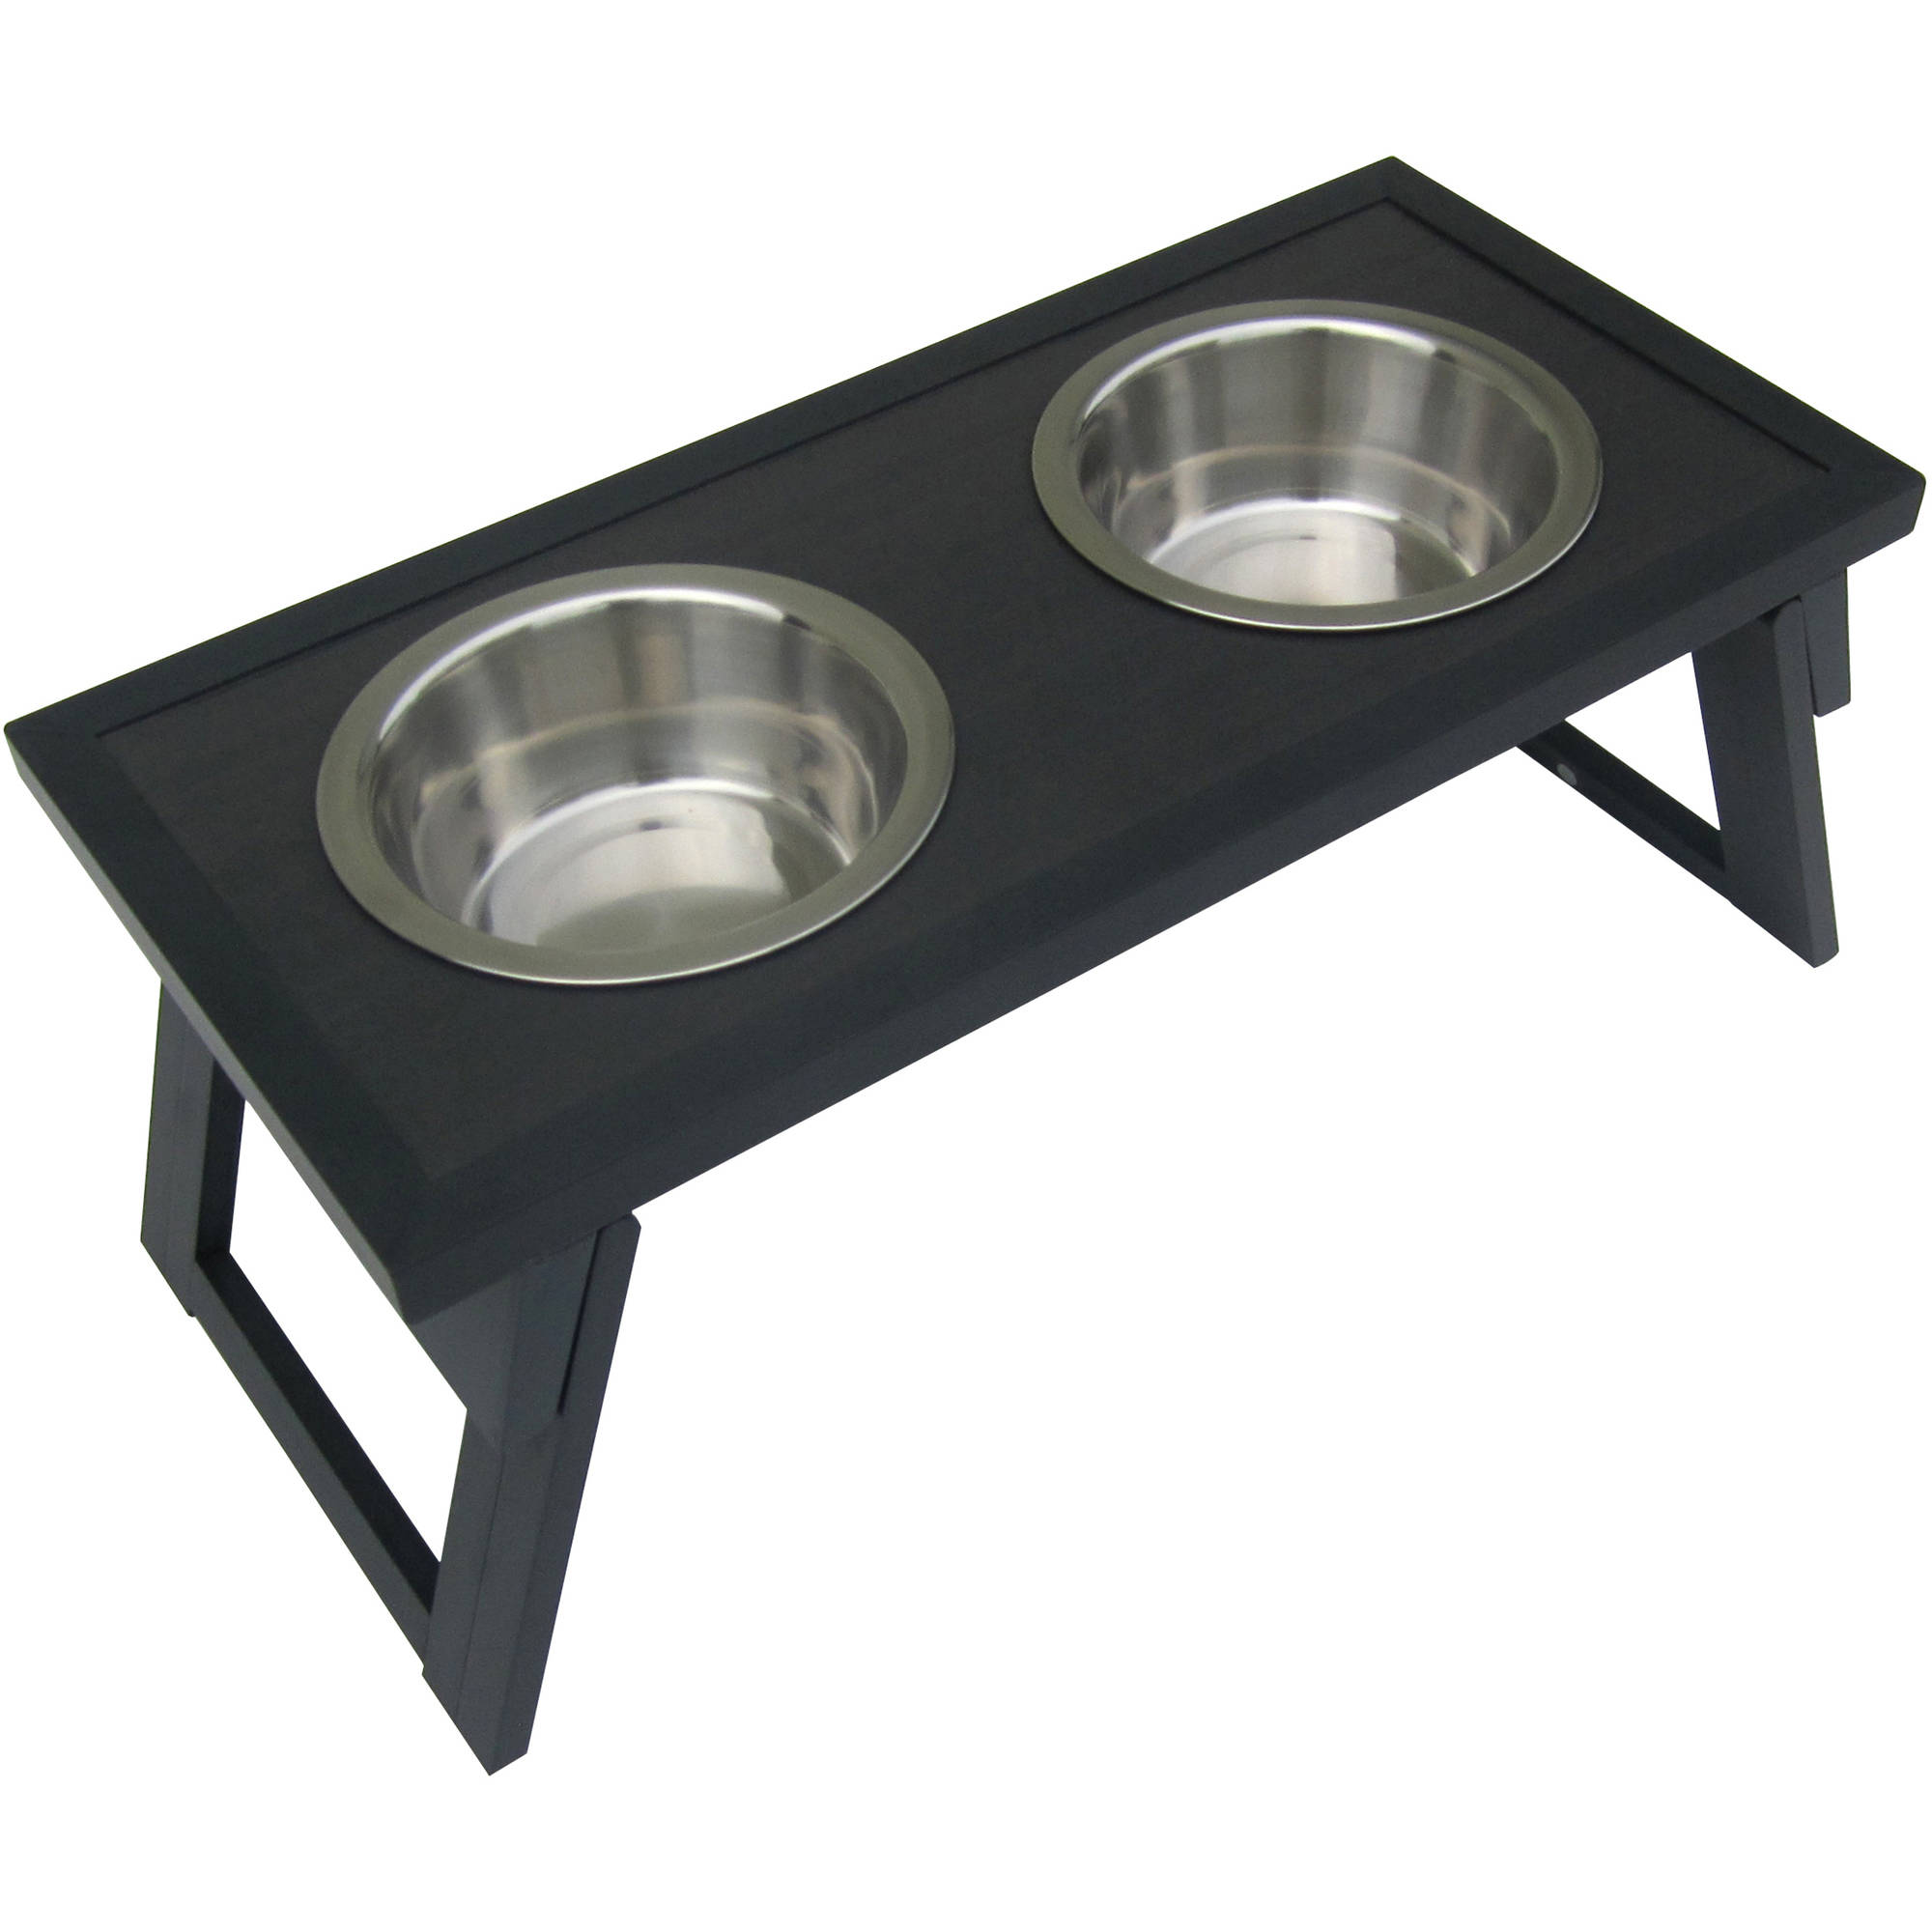 New Age Pet Habitat 'n Home HiLo Diner Raised Dog Bowl, Large, Espresso